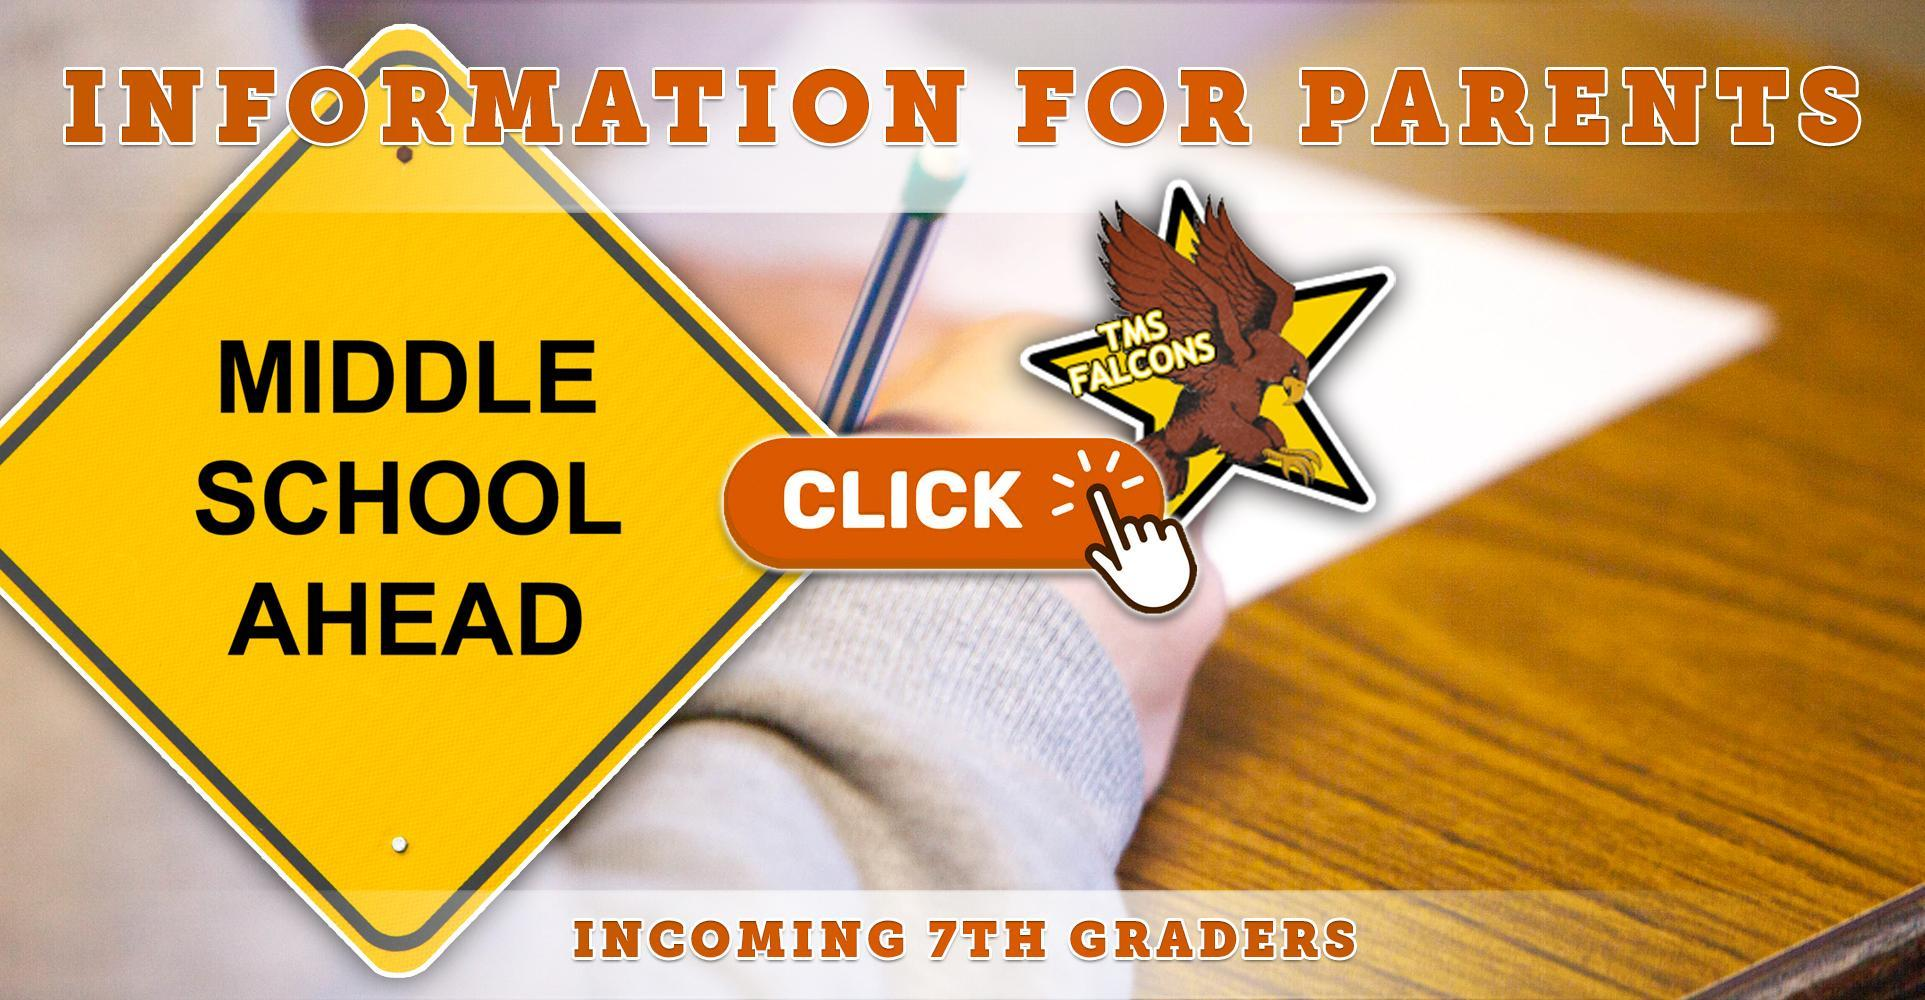 Middle School Ahead! Information for Parents of Incoming 7th Graders